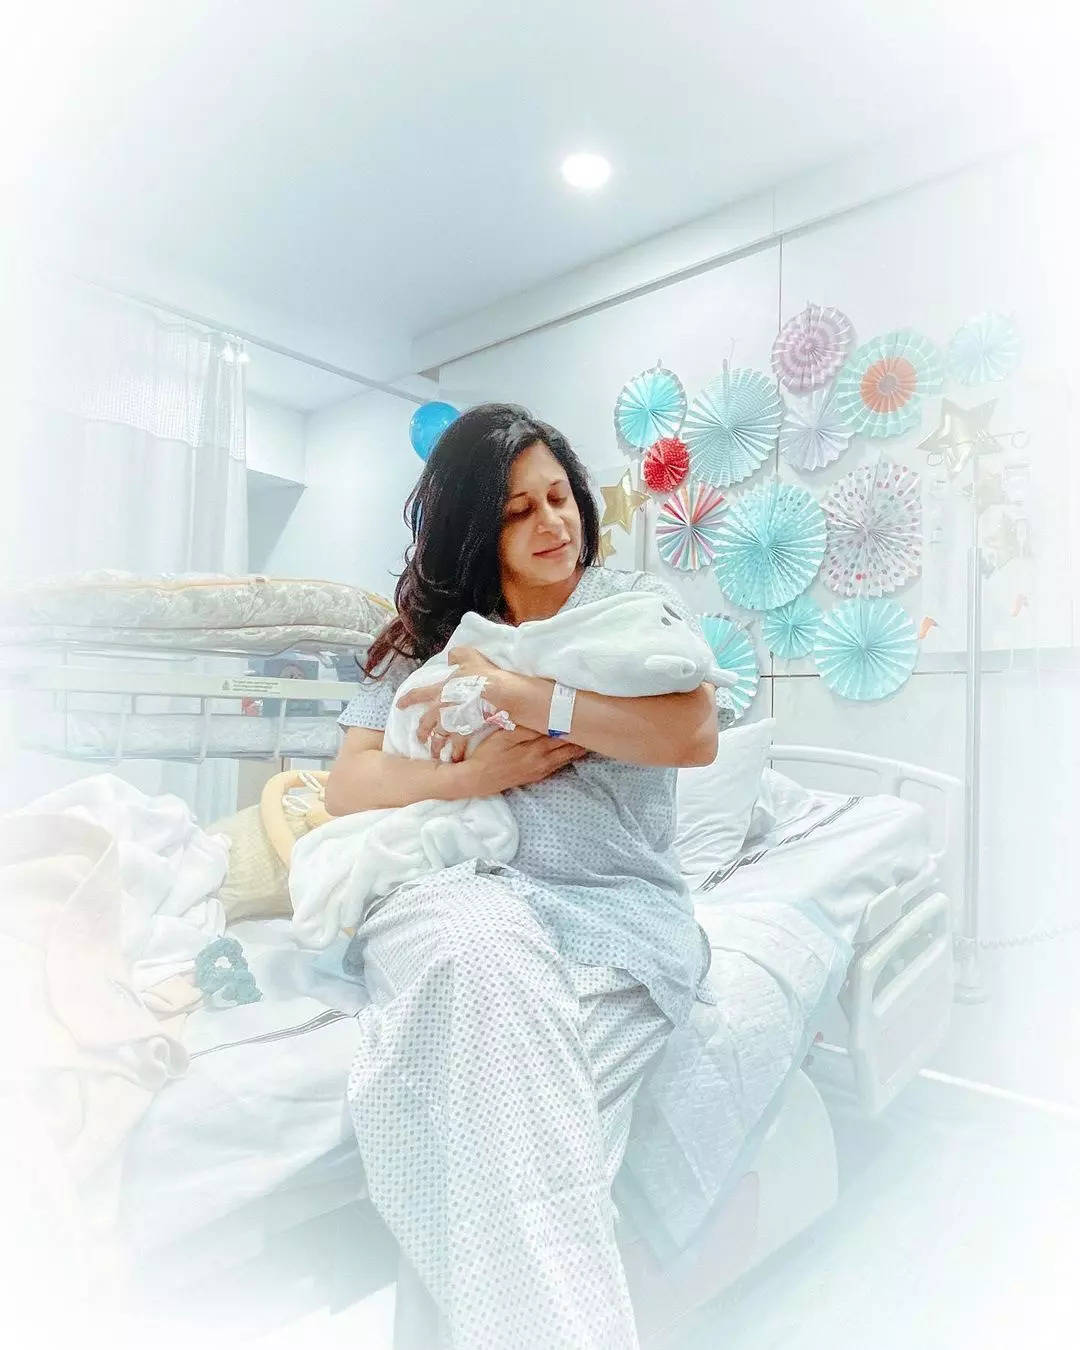 Kishwer and Suyyash receive warm welcome as they bring their newborn baby boy home